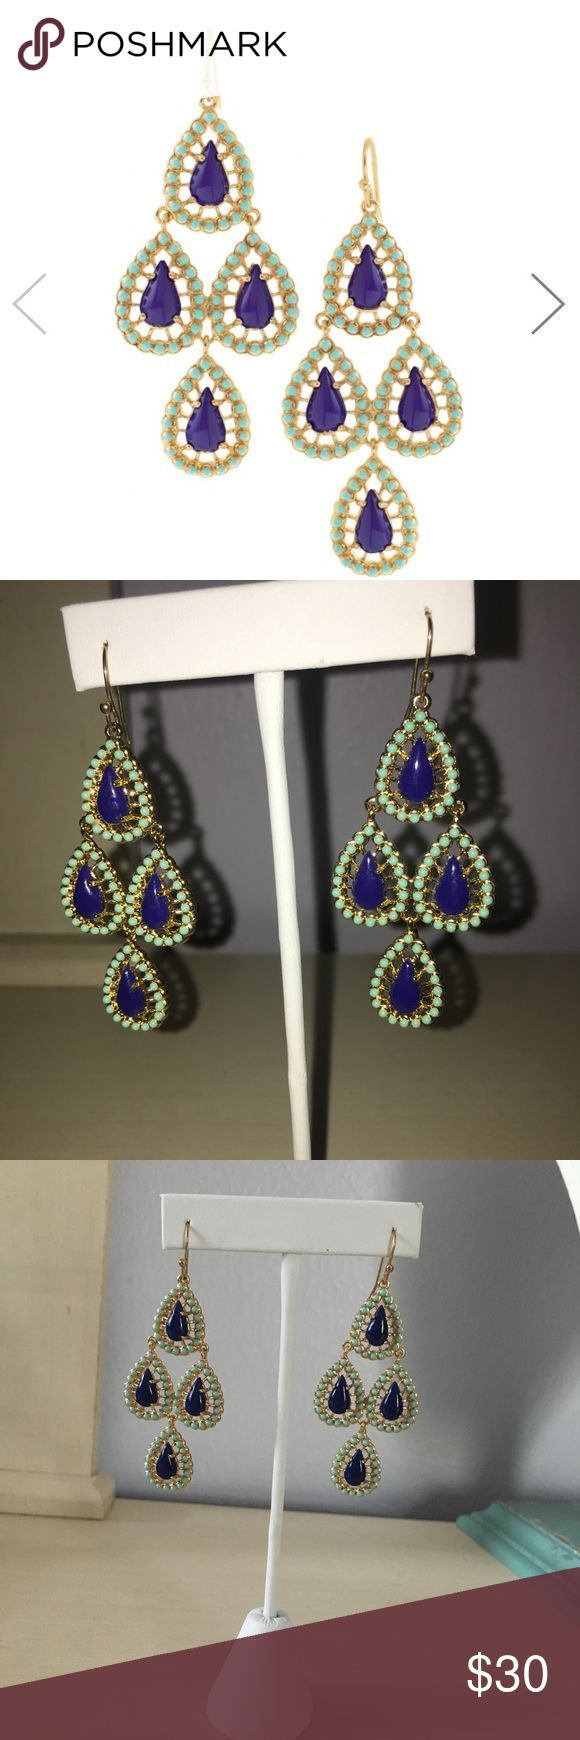 Stella & Dot Seychelles Chandelier earrings Stella & Dot Seychelles Chandelier earrings in blue and turquoise. 2 1/4 inches long. Brand new, perfect condition, out of packaging. Stella & Dot Jewelry Earrings